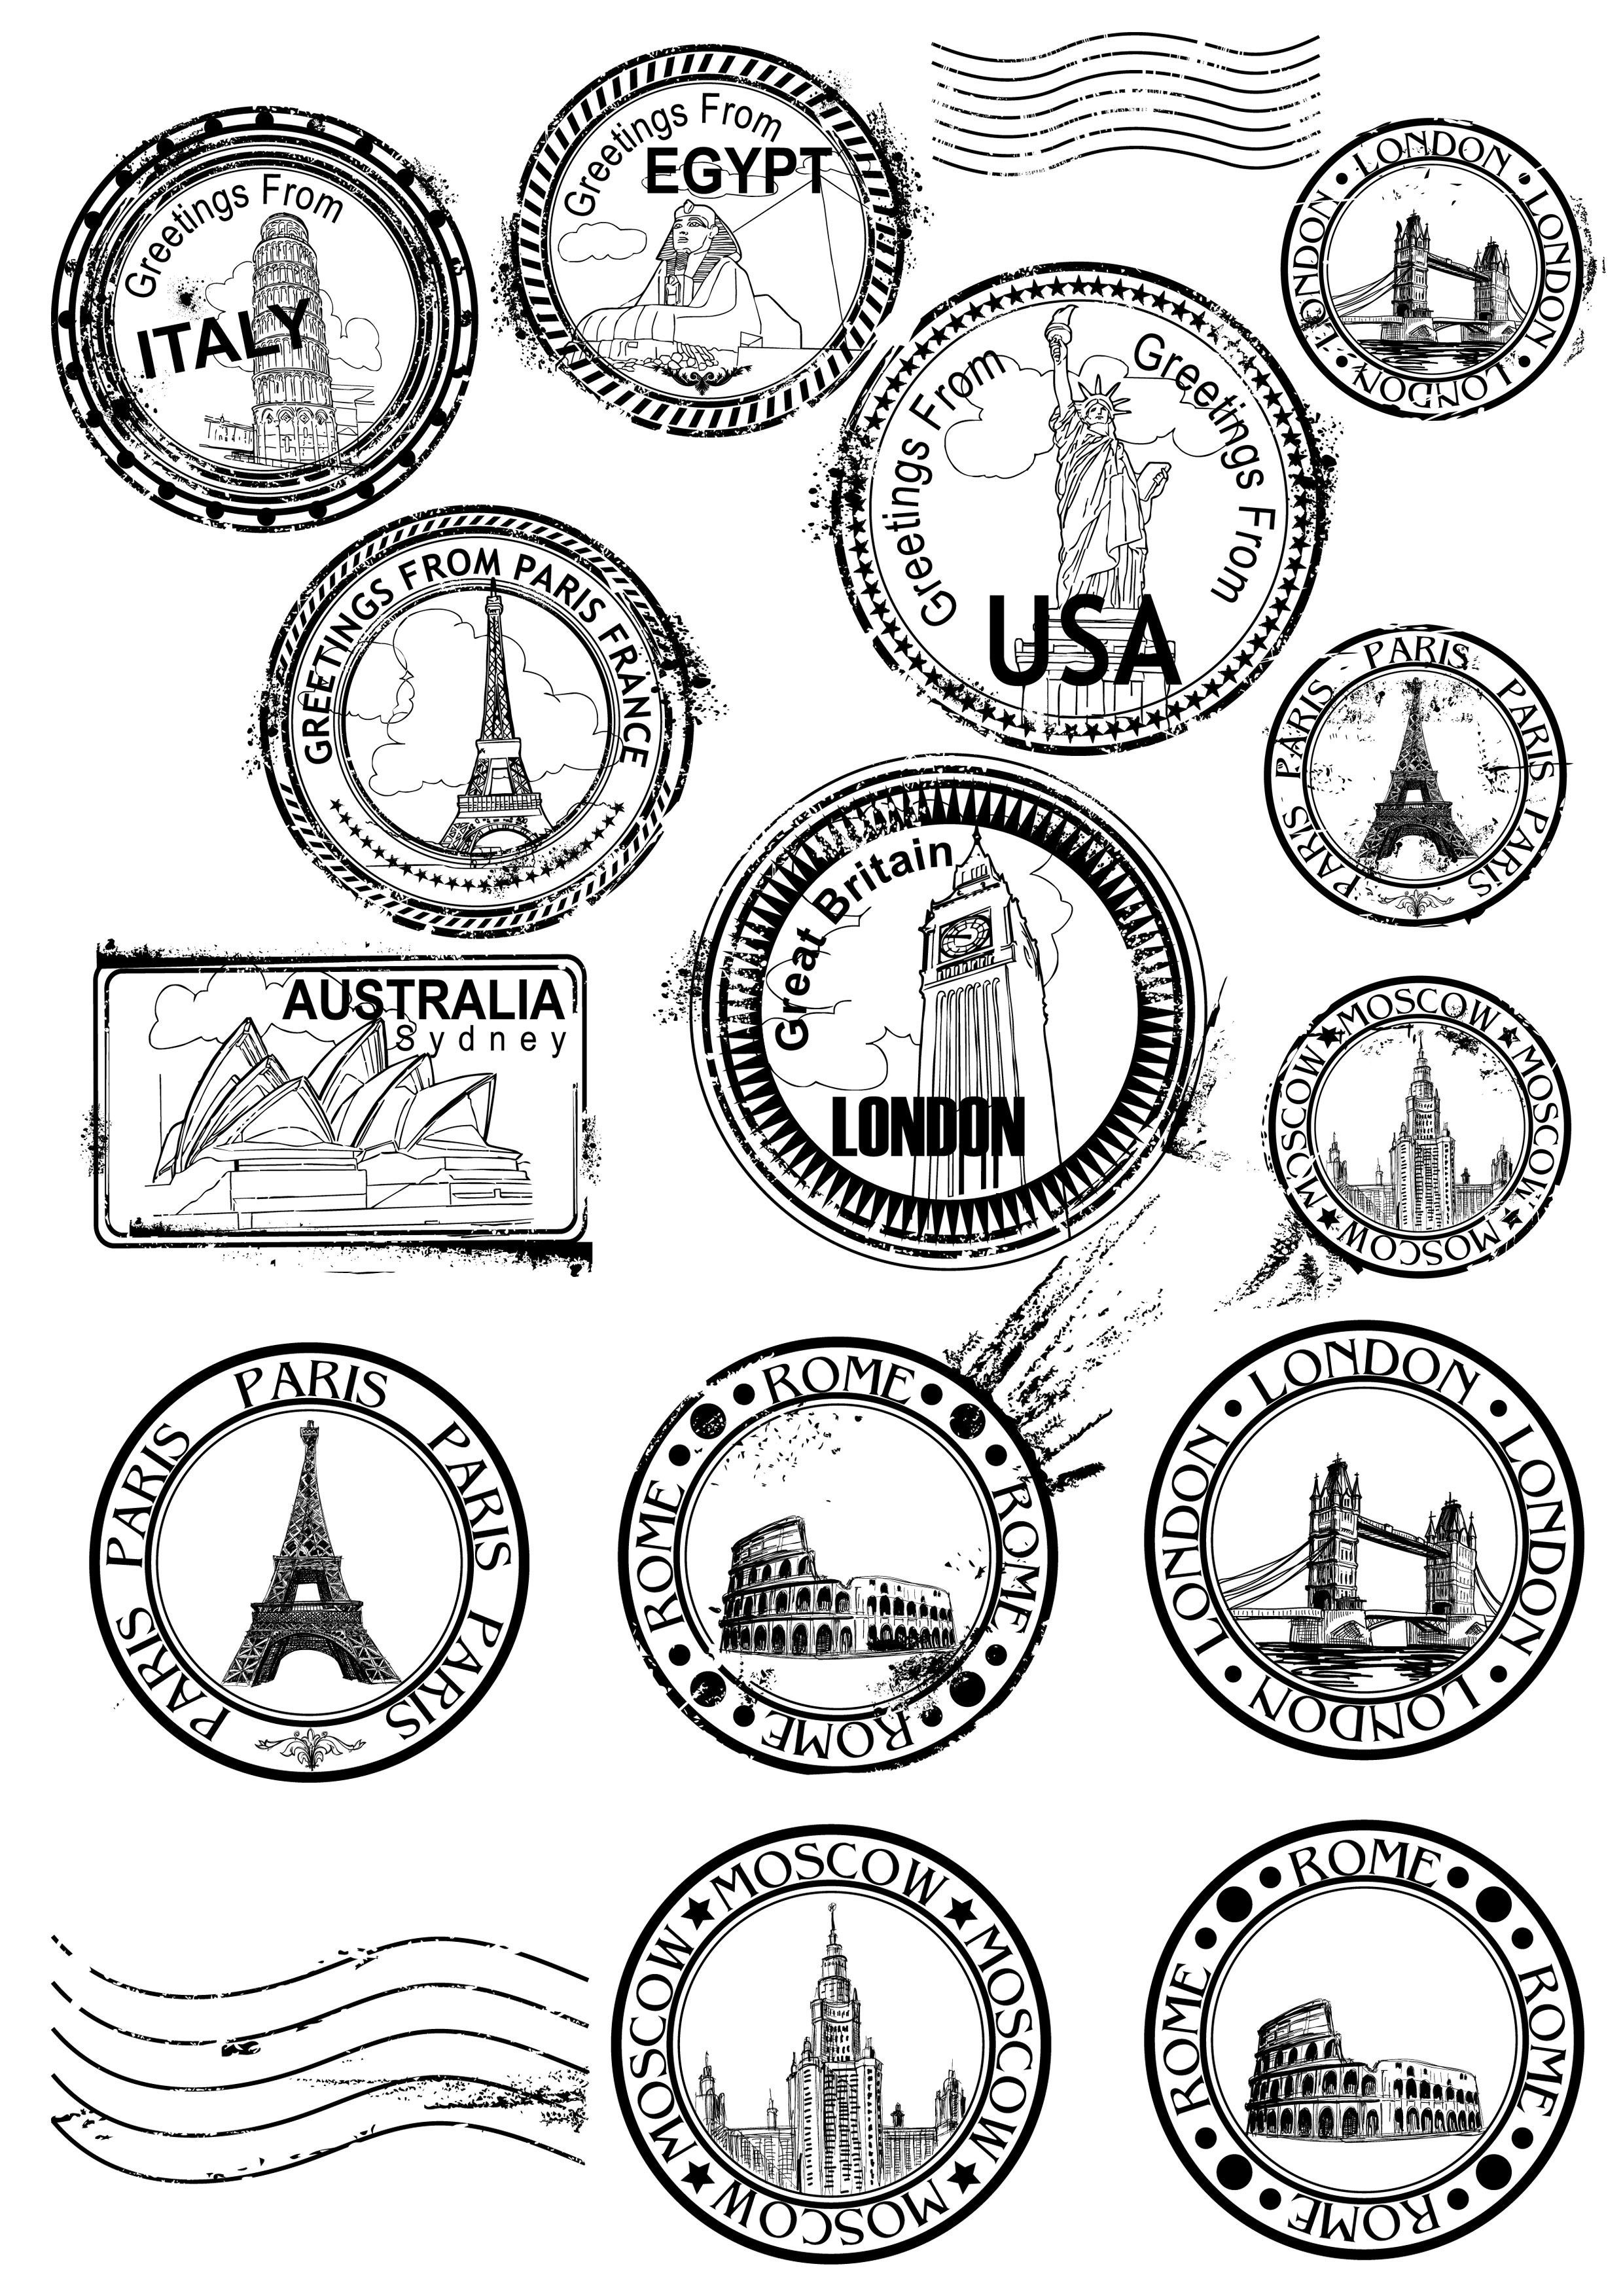 Old Postmark Postage Clipart Vintage Post Office Cancellation Mark Clip Art Mykinglist Com Travel Stamp Bullet Journal Stickers Journal Stickers